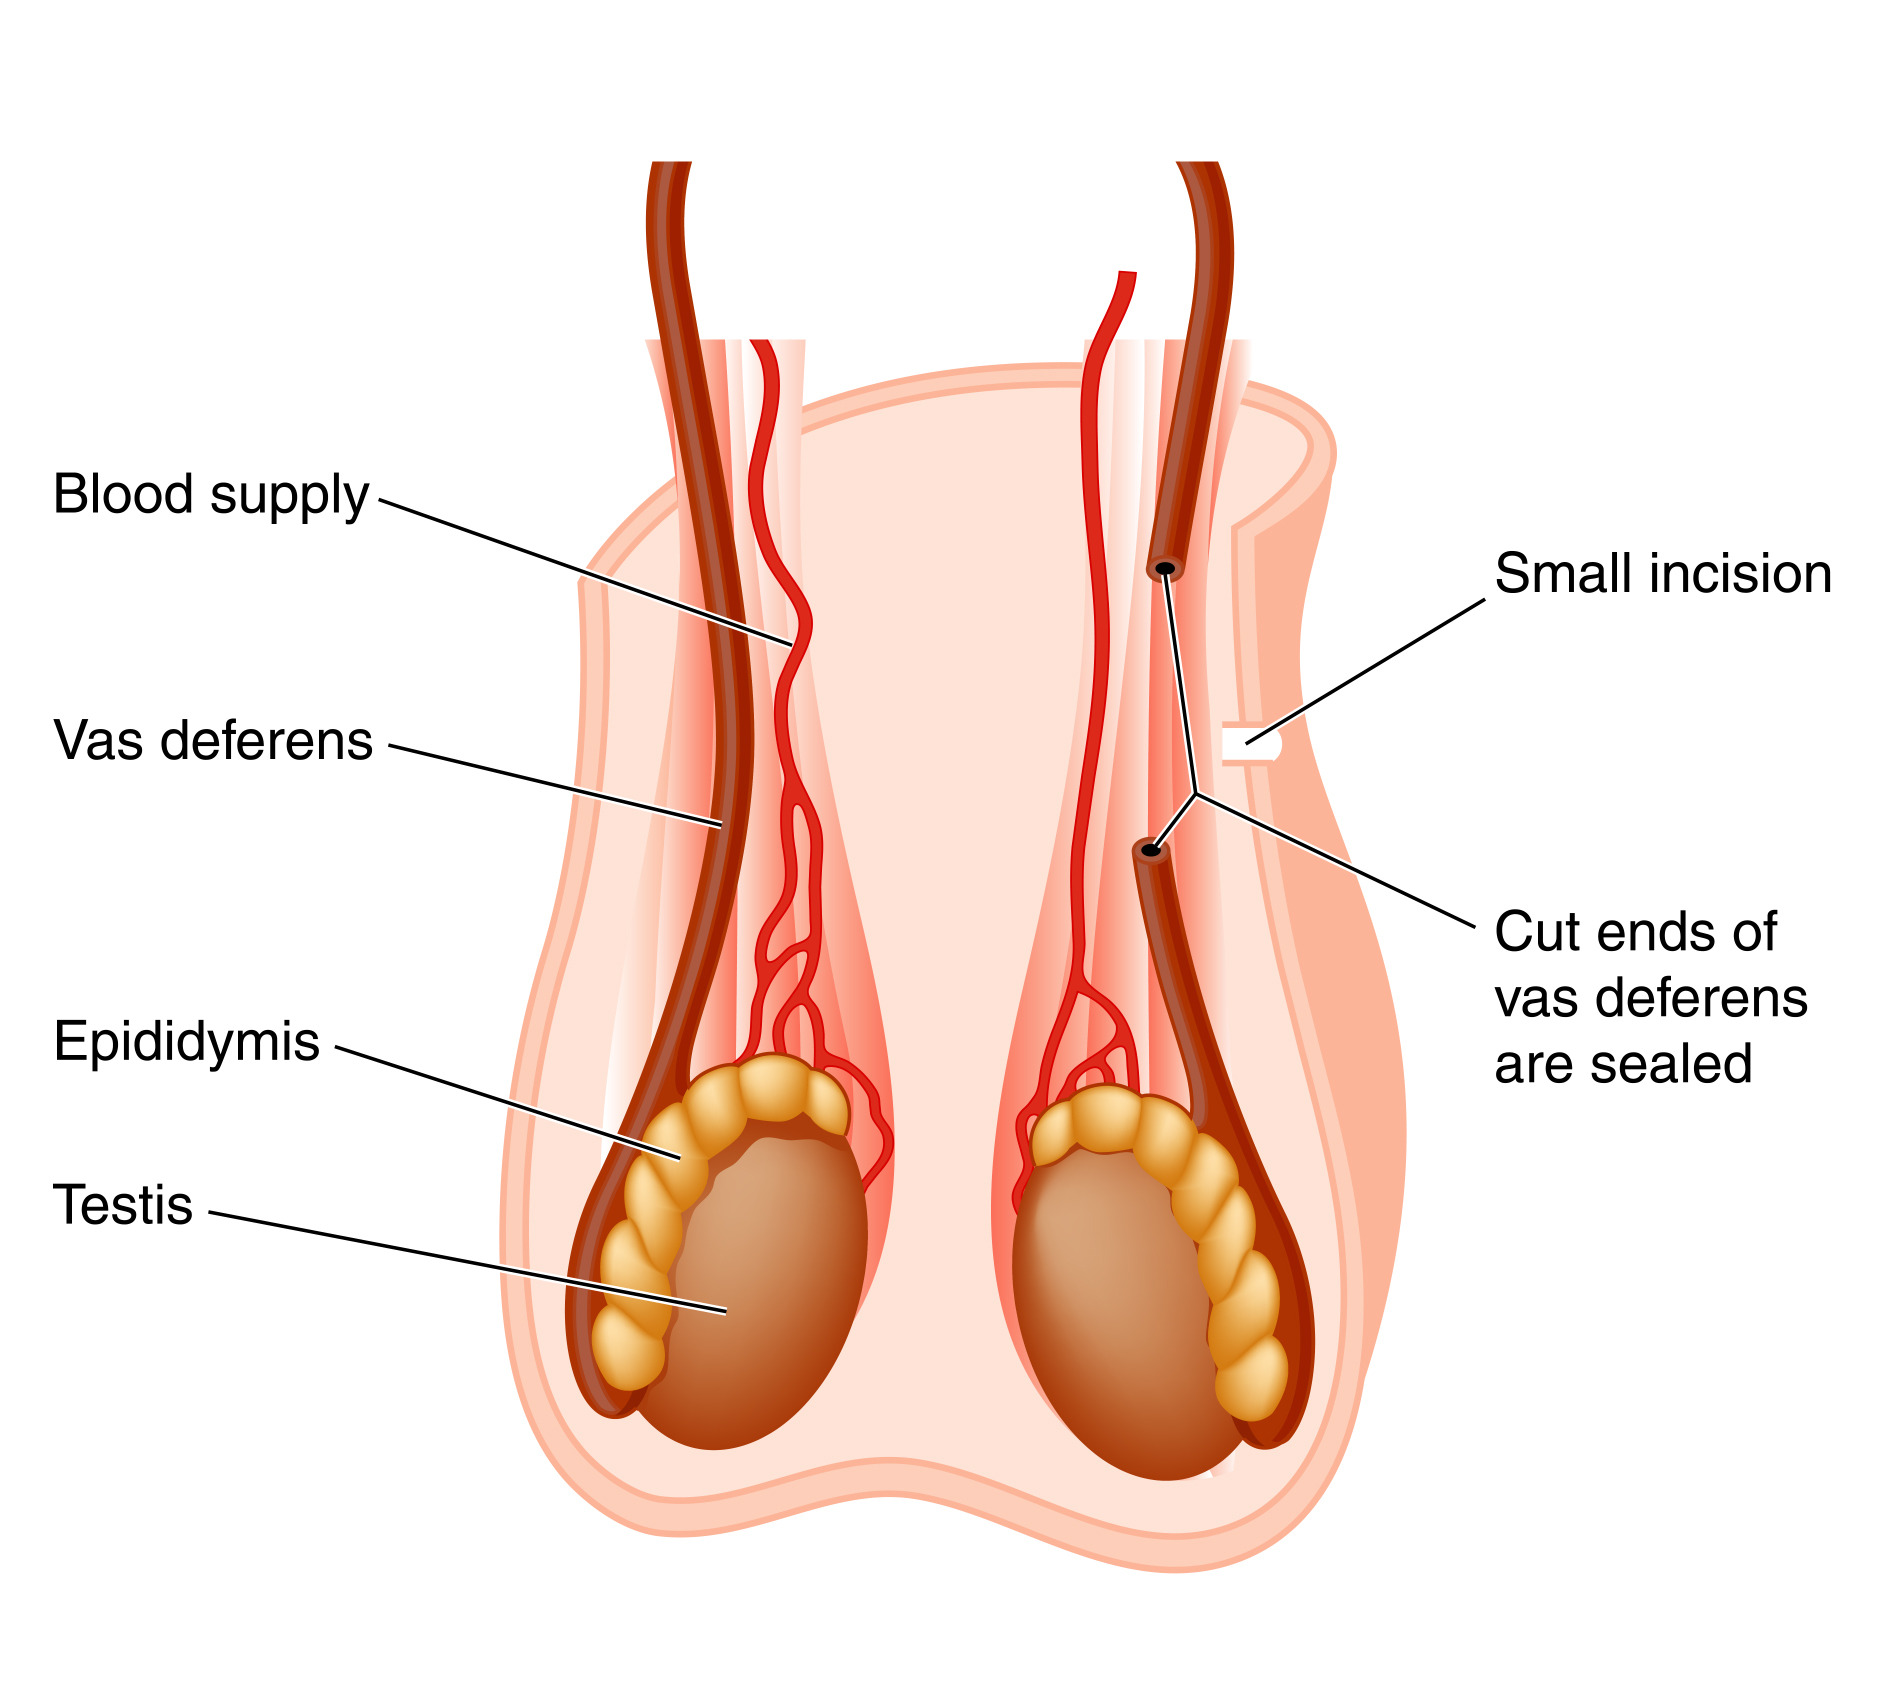 Effects of vascectamy on sex life